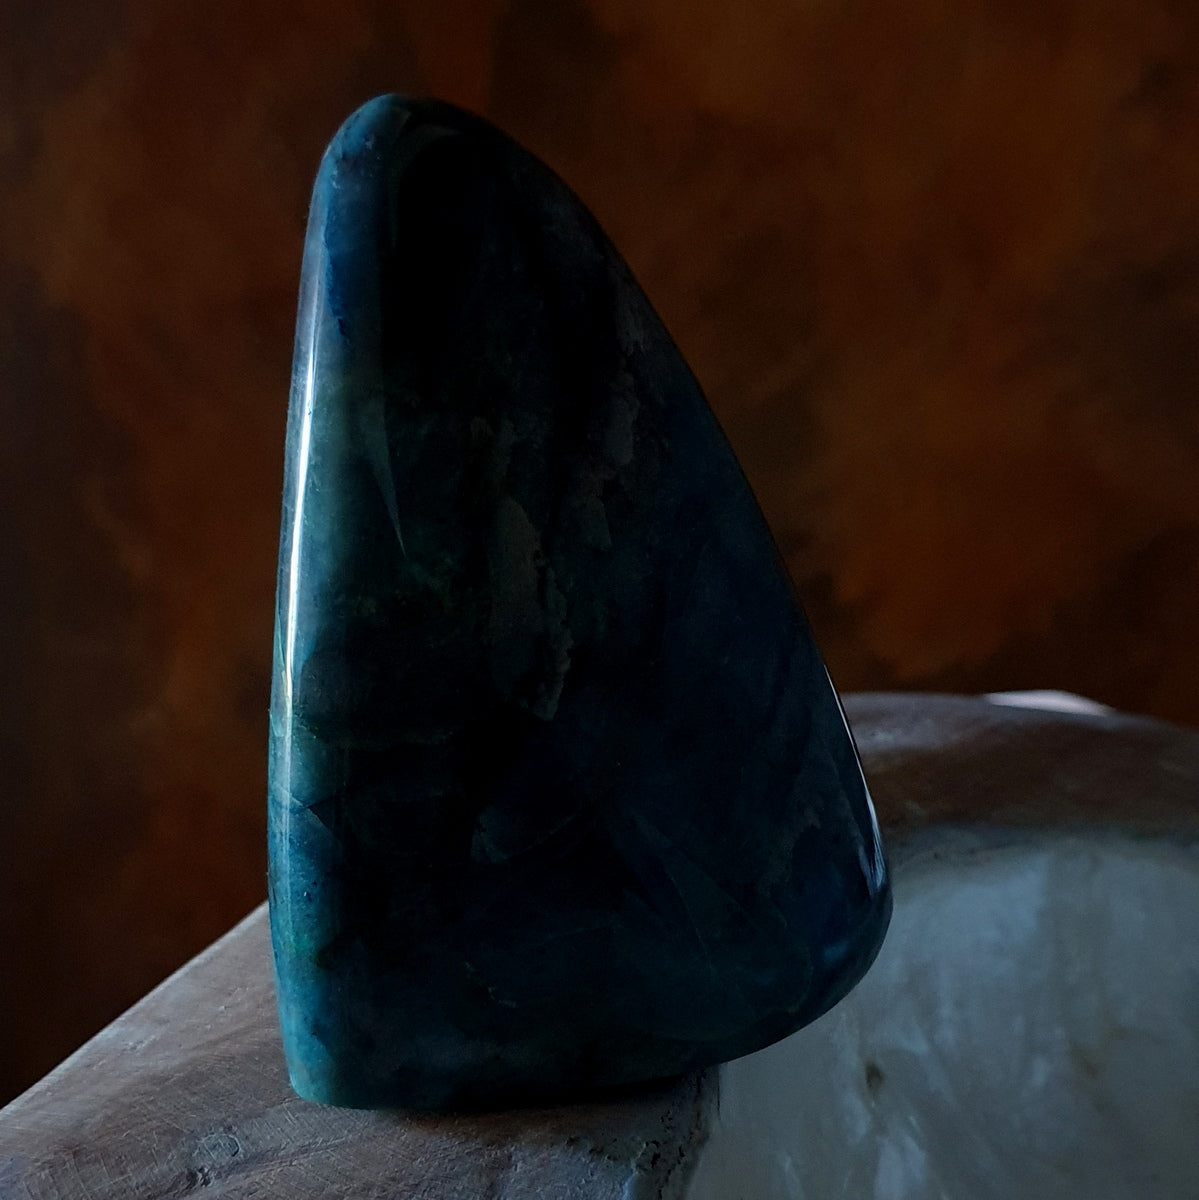 Shattuckite Polished Freeform Congo - Shop Now at Illiom Crystals - Afterpay Available